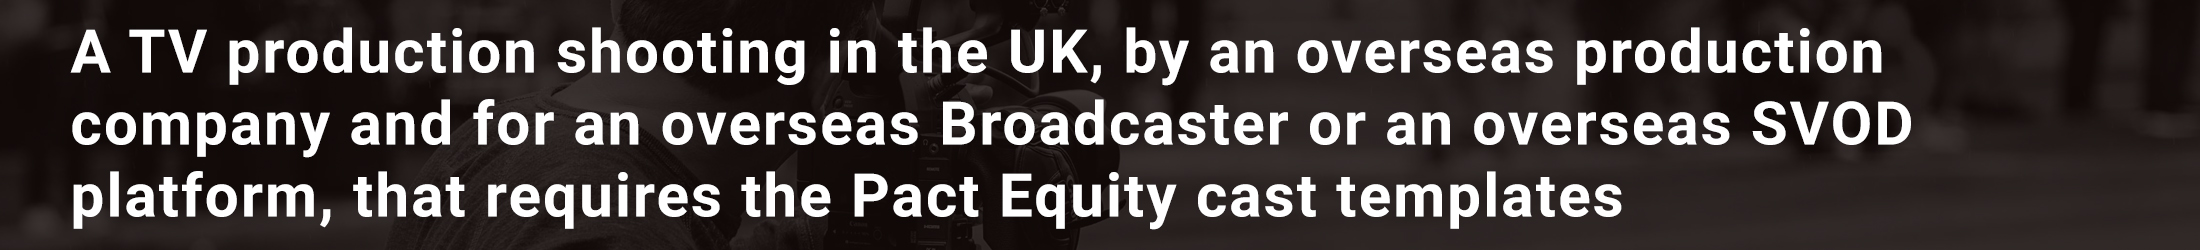 A TV production shooting in the UK, by an overseas production company and for an overseas Broadcaster or an overseas SVOD platform, that requires the Pact Equity cast templates